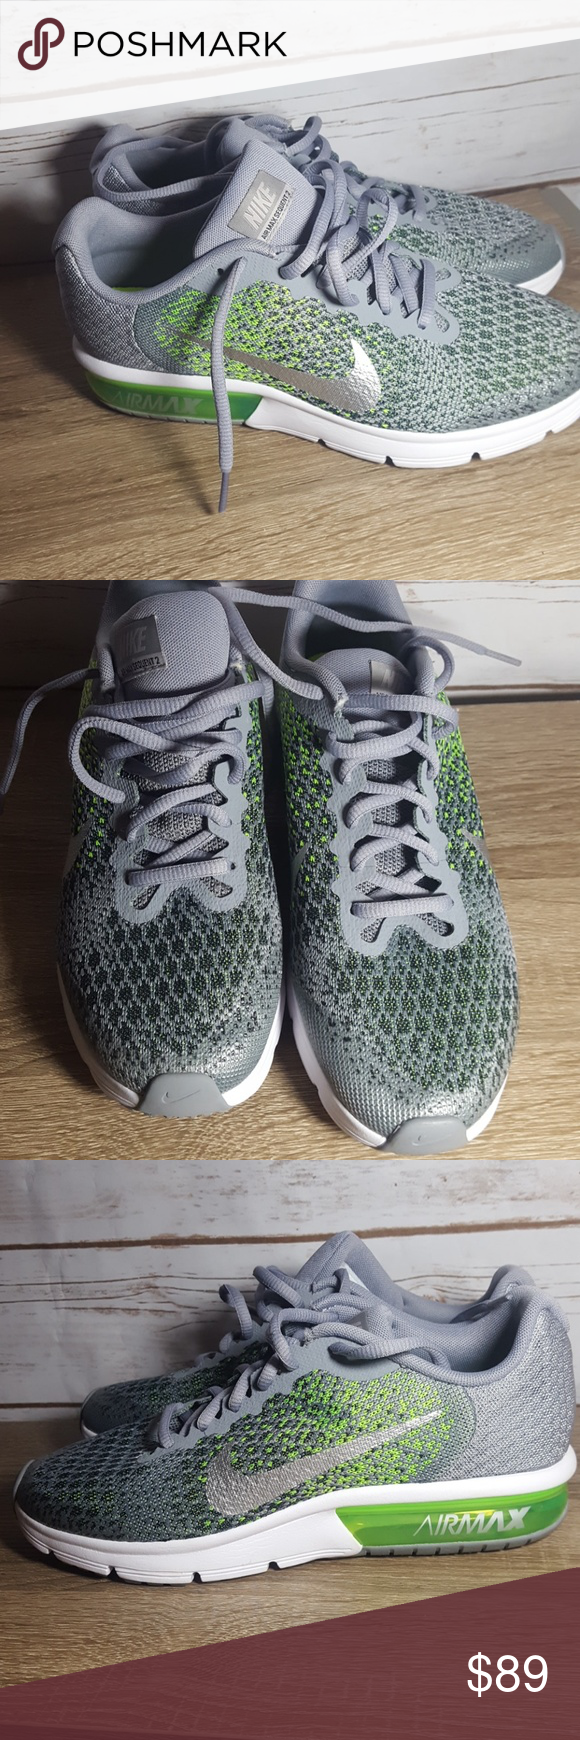 970bf4d678107c Nike Air Max sequent 2 GS grey green running shoe New no box Youth size 6.5  Women 8 Pet free smoke free home Nike Shoes Sneakers